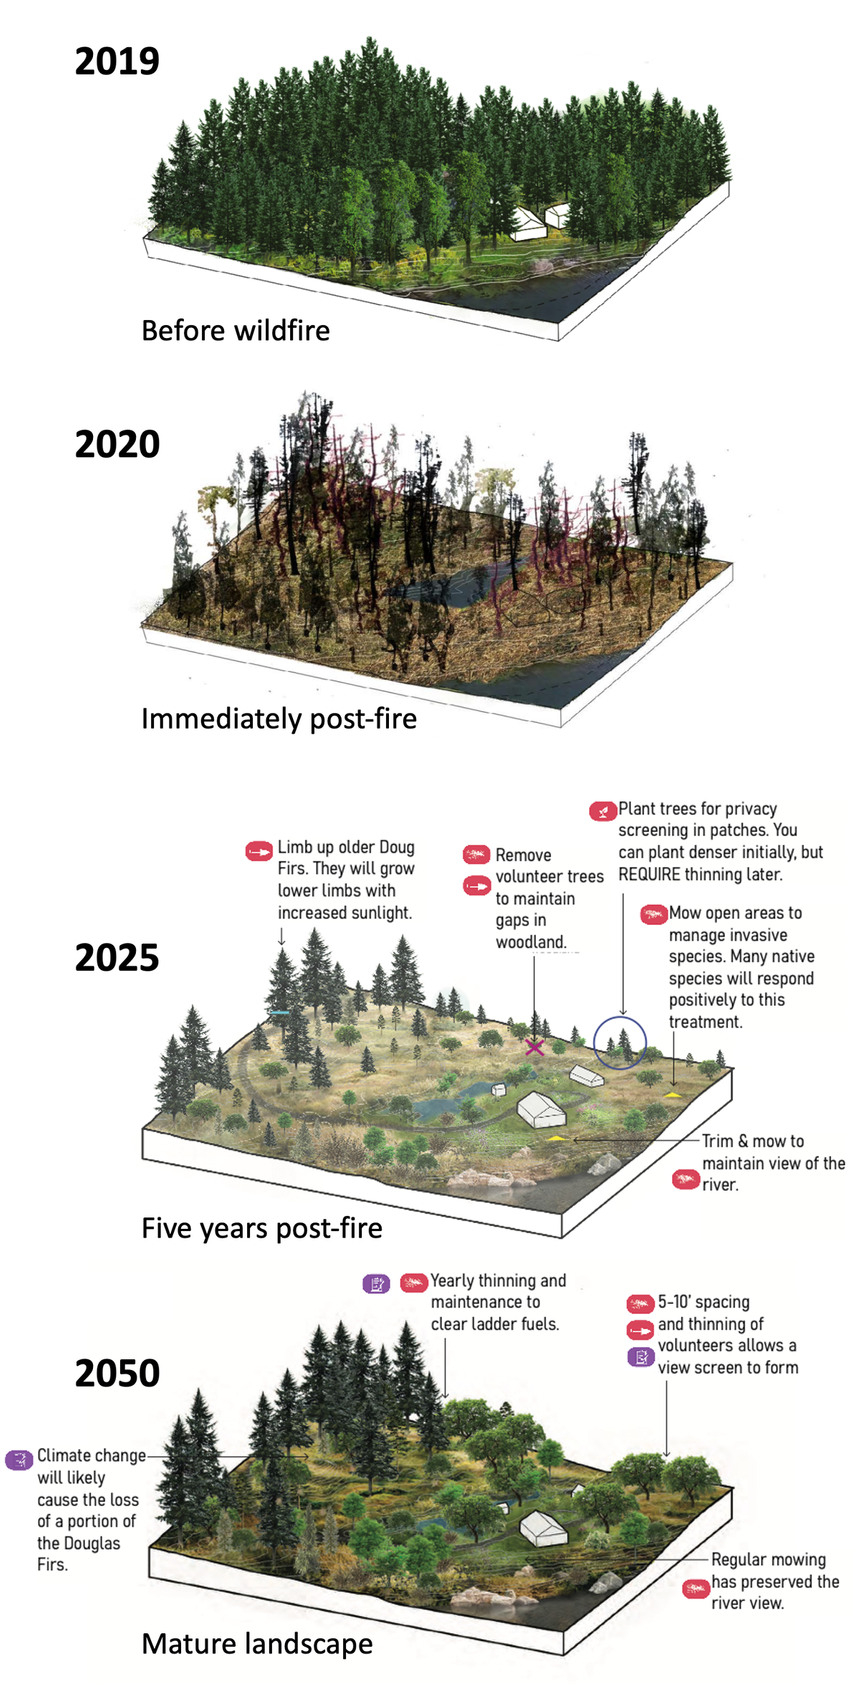 University of Oregon landscape architecture students worked with landowners whose homes were destroyed in the 2020 Holiday Farm Fire to help them develop greater resilience to future wildfires.